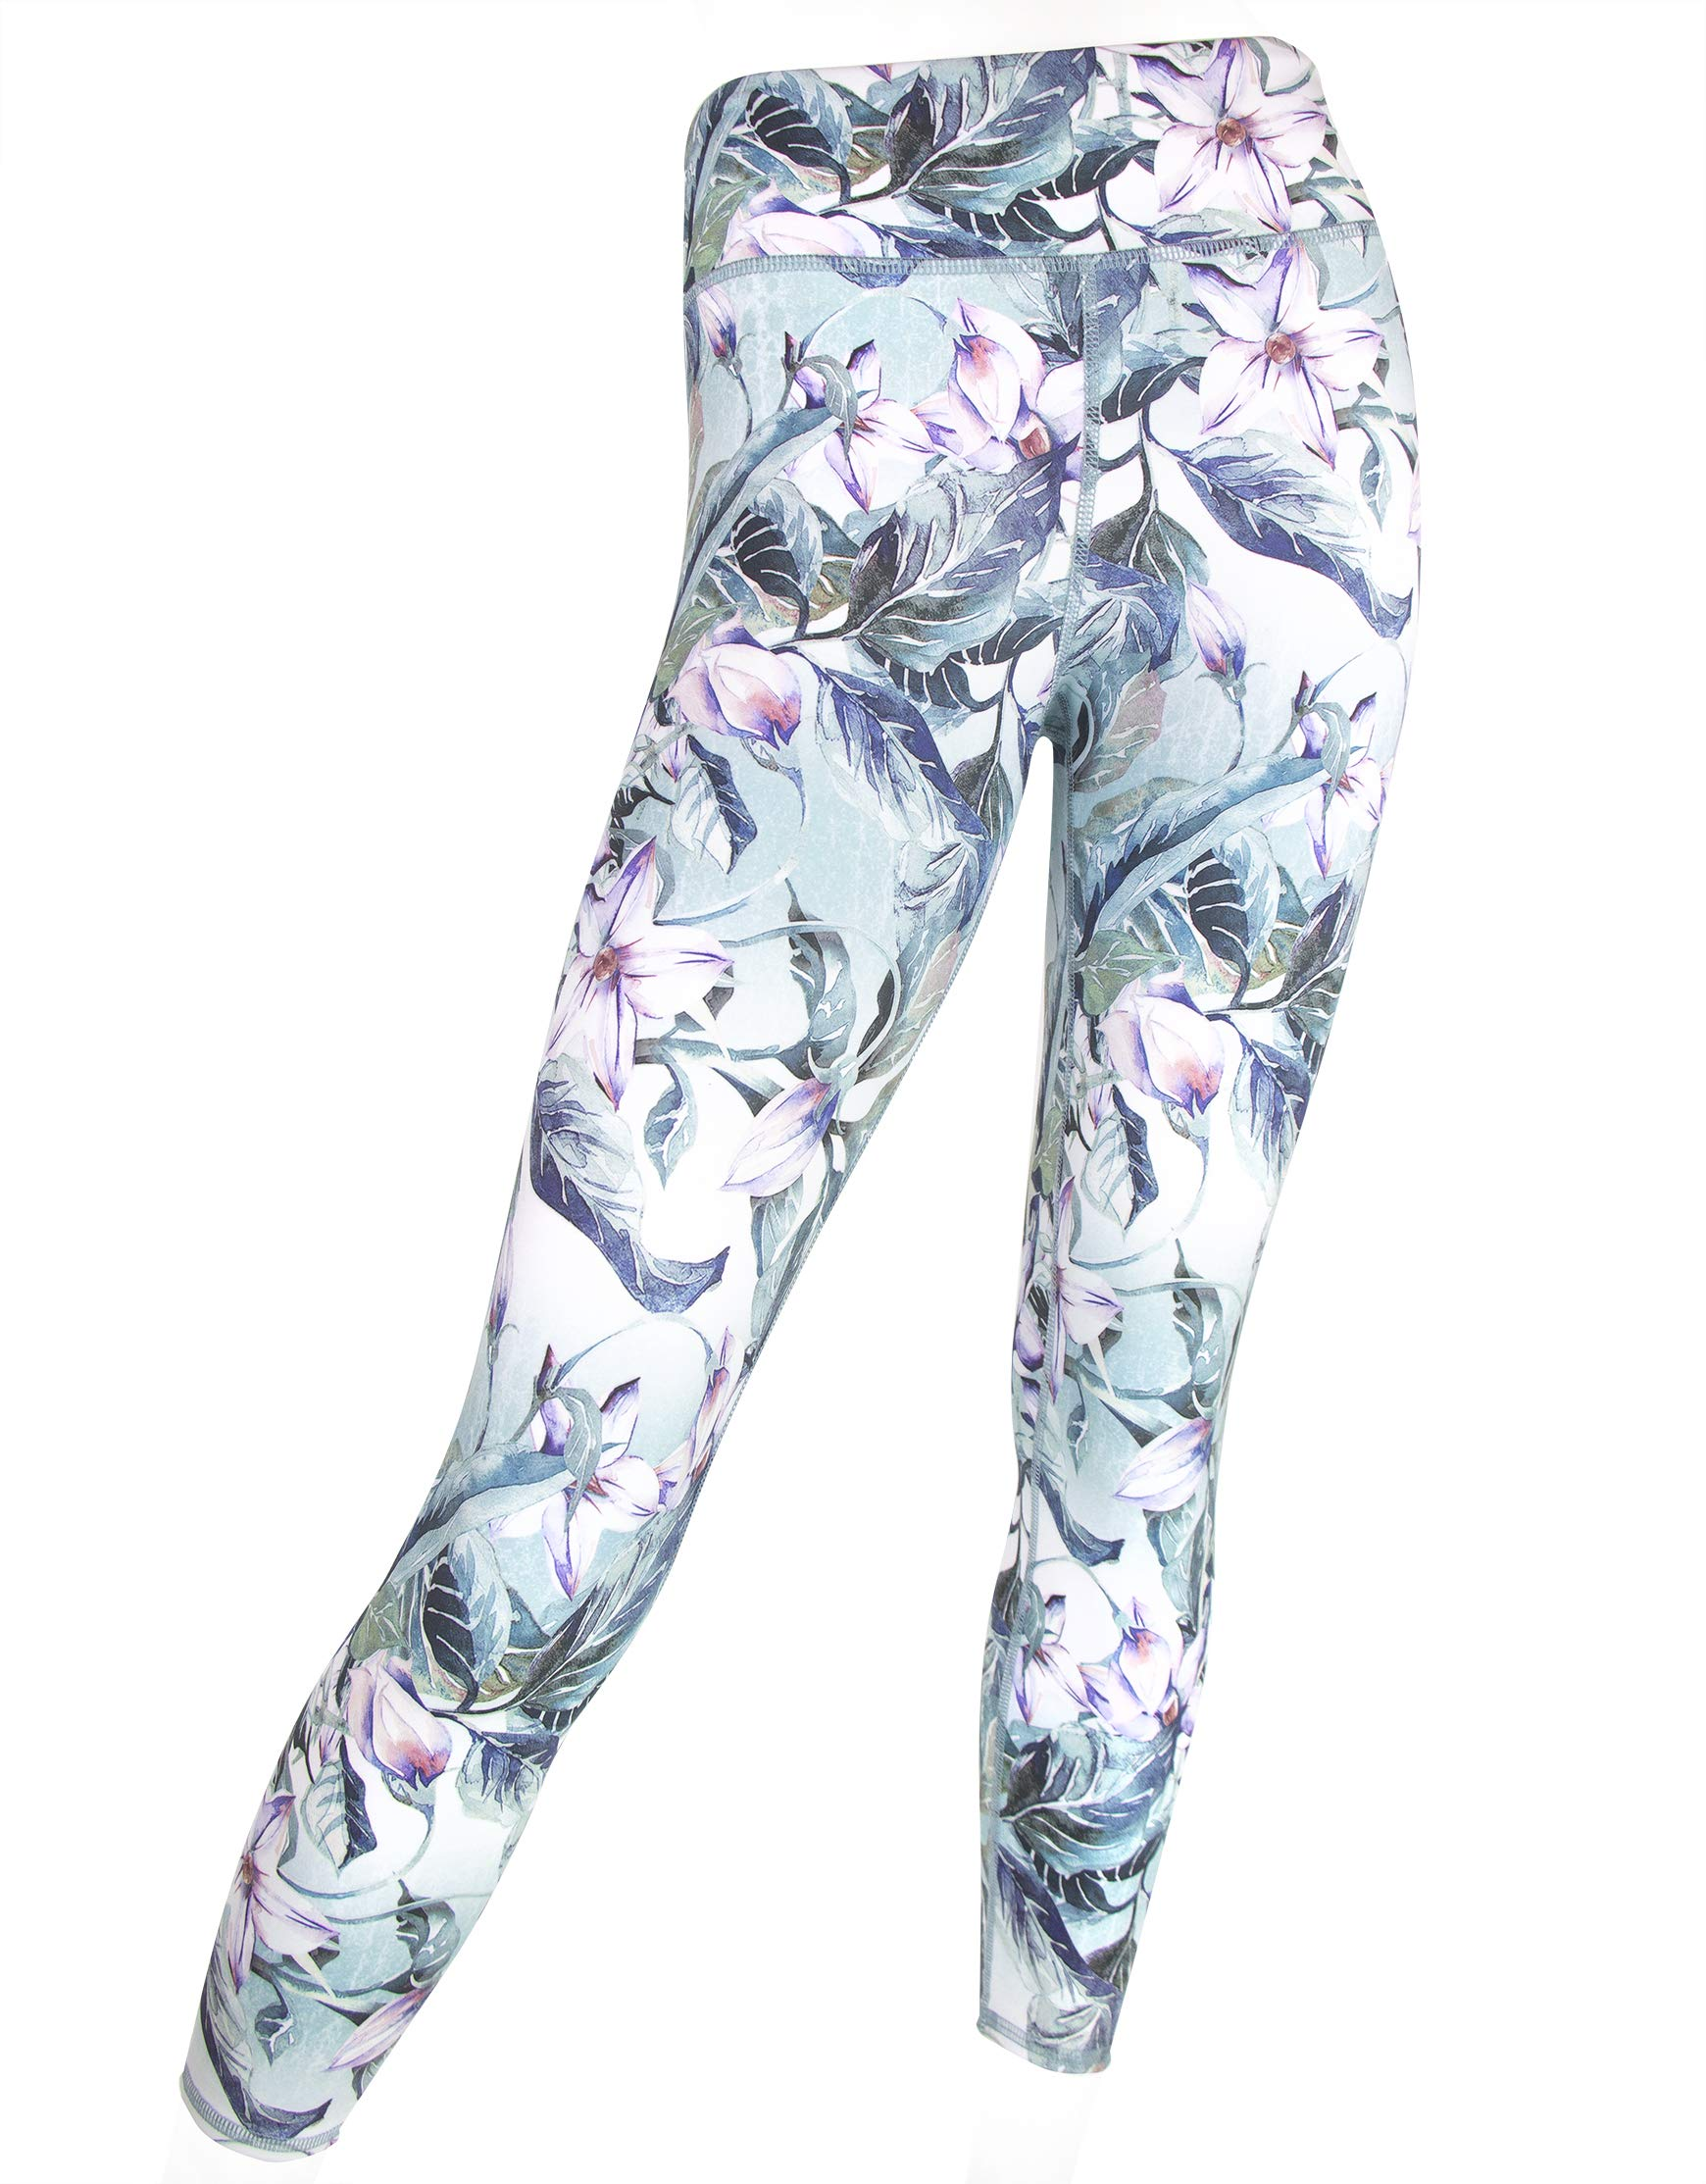 EVCR Compression Leggings for Women - 7/8 Length Non See Through Soft Athletic Yoga Pants for Workout, Spring Bloom, Large by EVCR